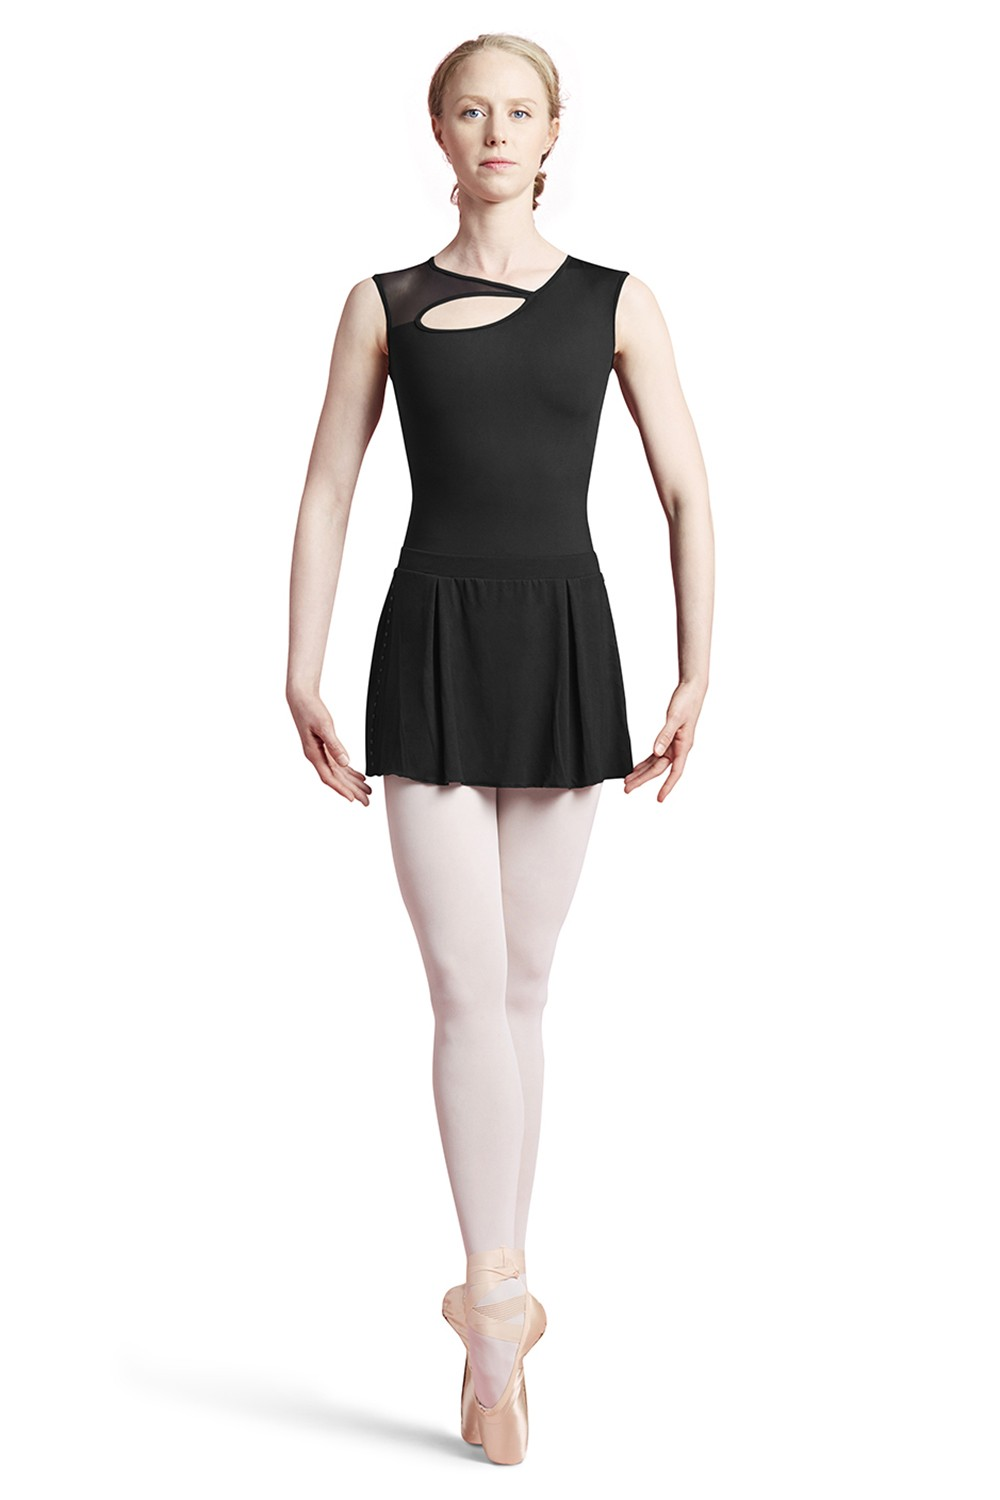 Tyce Womens Short Sleeve Leotards